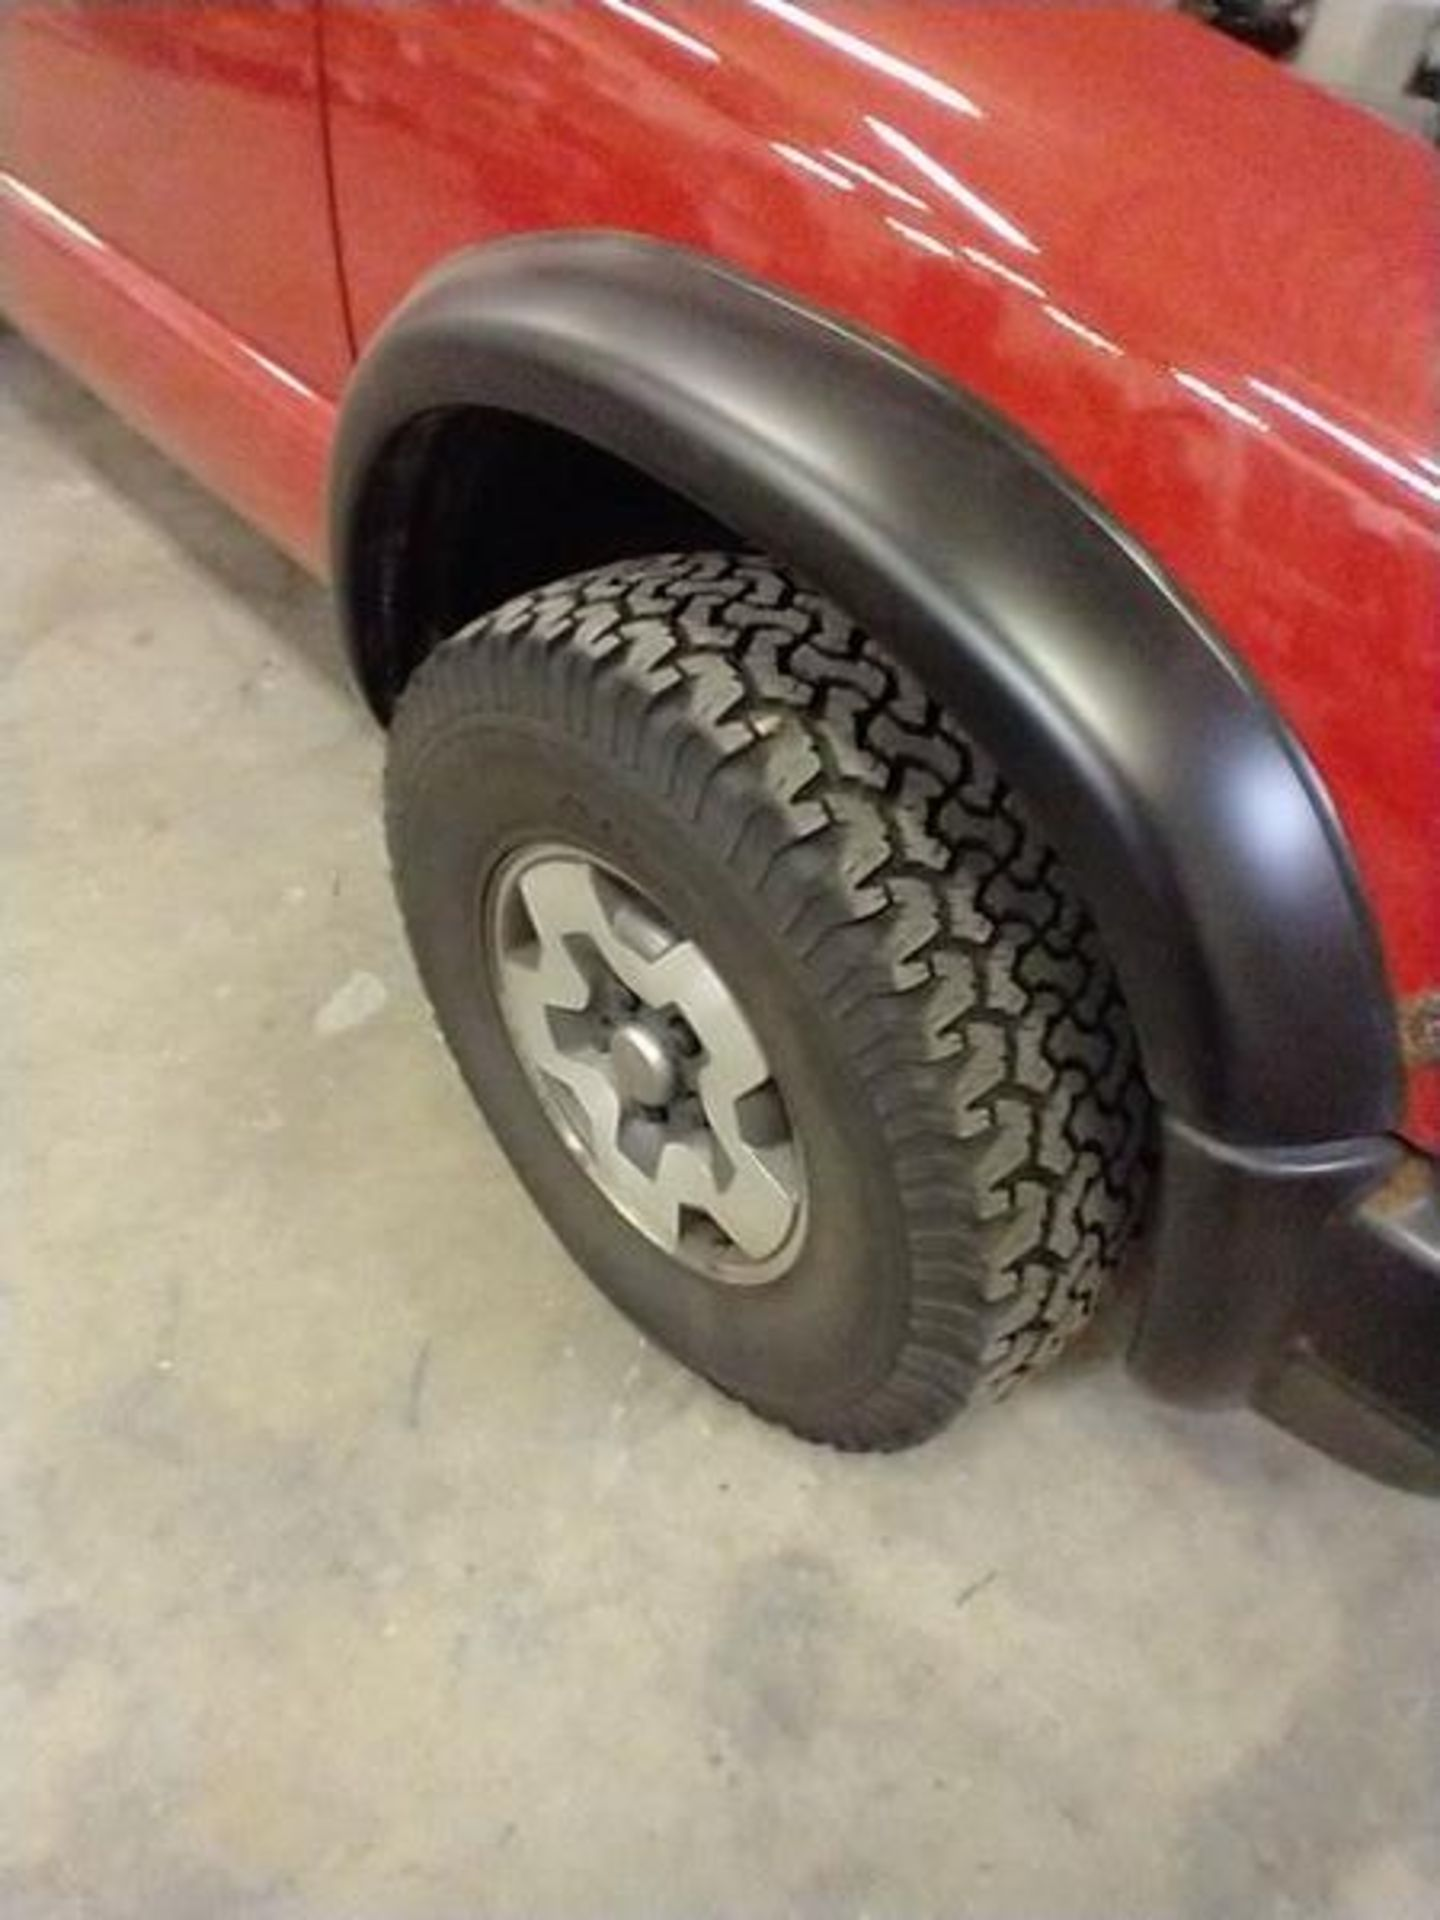 """2003 MANUAL CHEVY S10 TRUCK WITH 78"""" PLOW - NEEDS BREAKS - 109837 MILES - VIN 1GCCT19X938234959 - Image 5 of 9"""